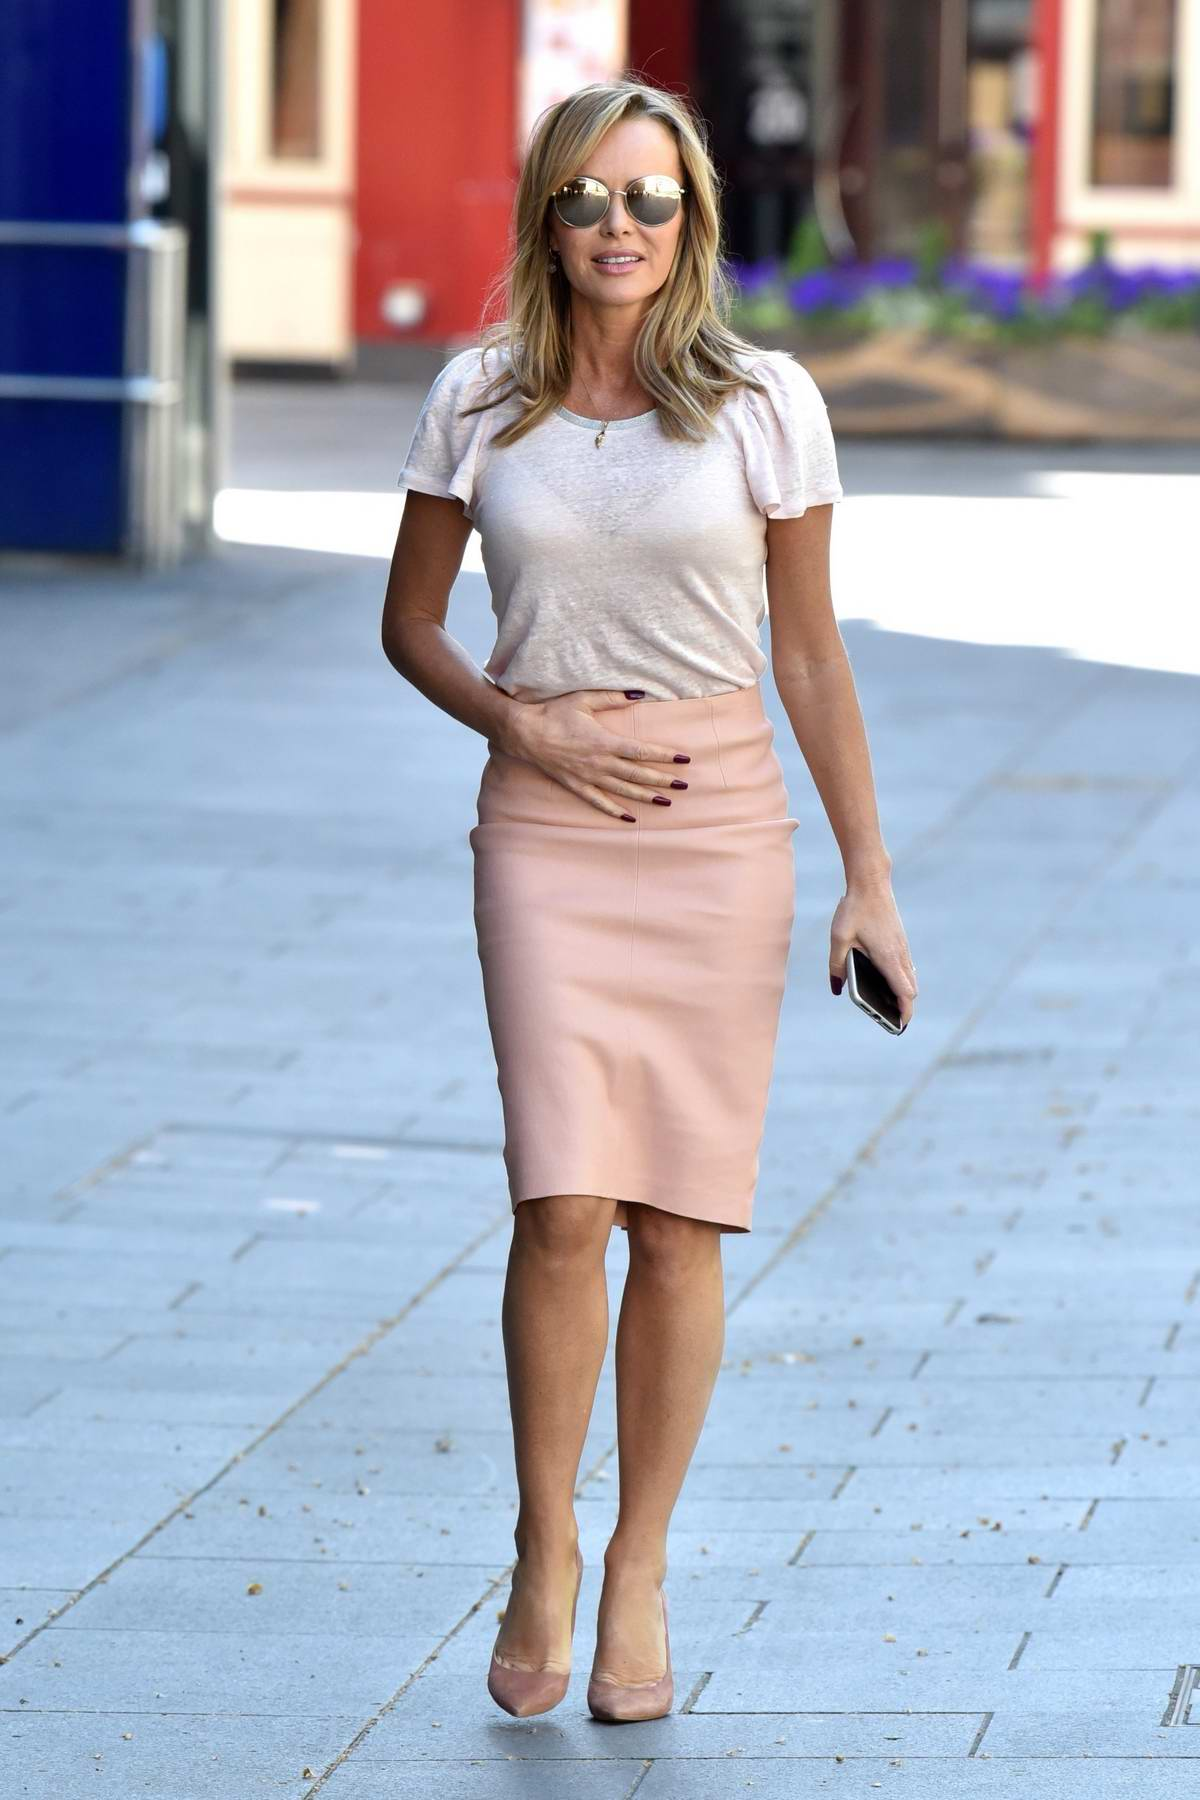 Amanda Holden seen wearing a white top and pastel pink skirt as she leaves Global Studios in London, UK